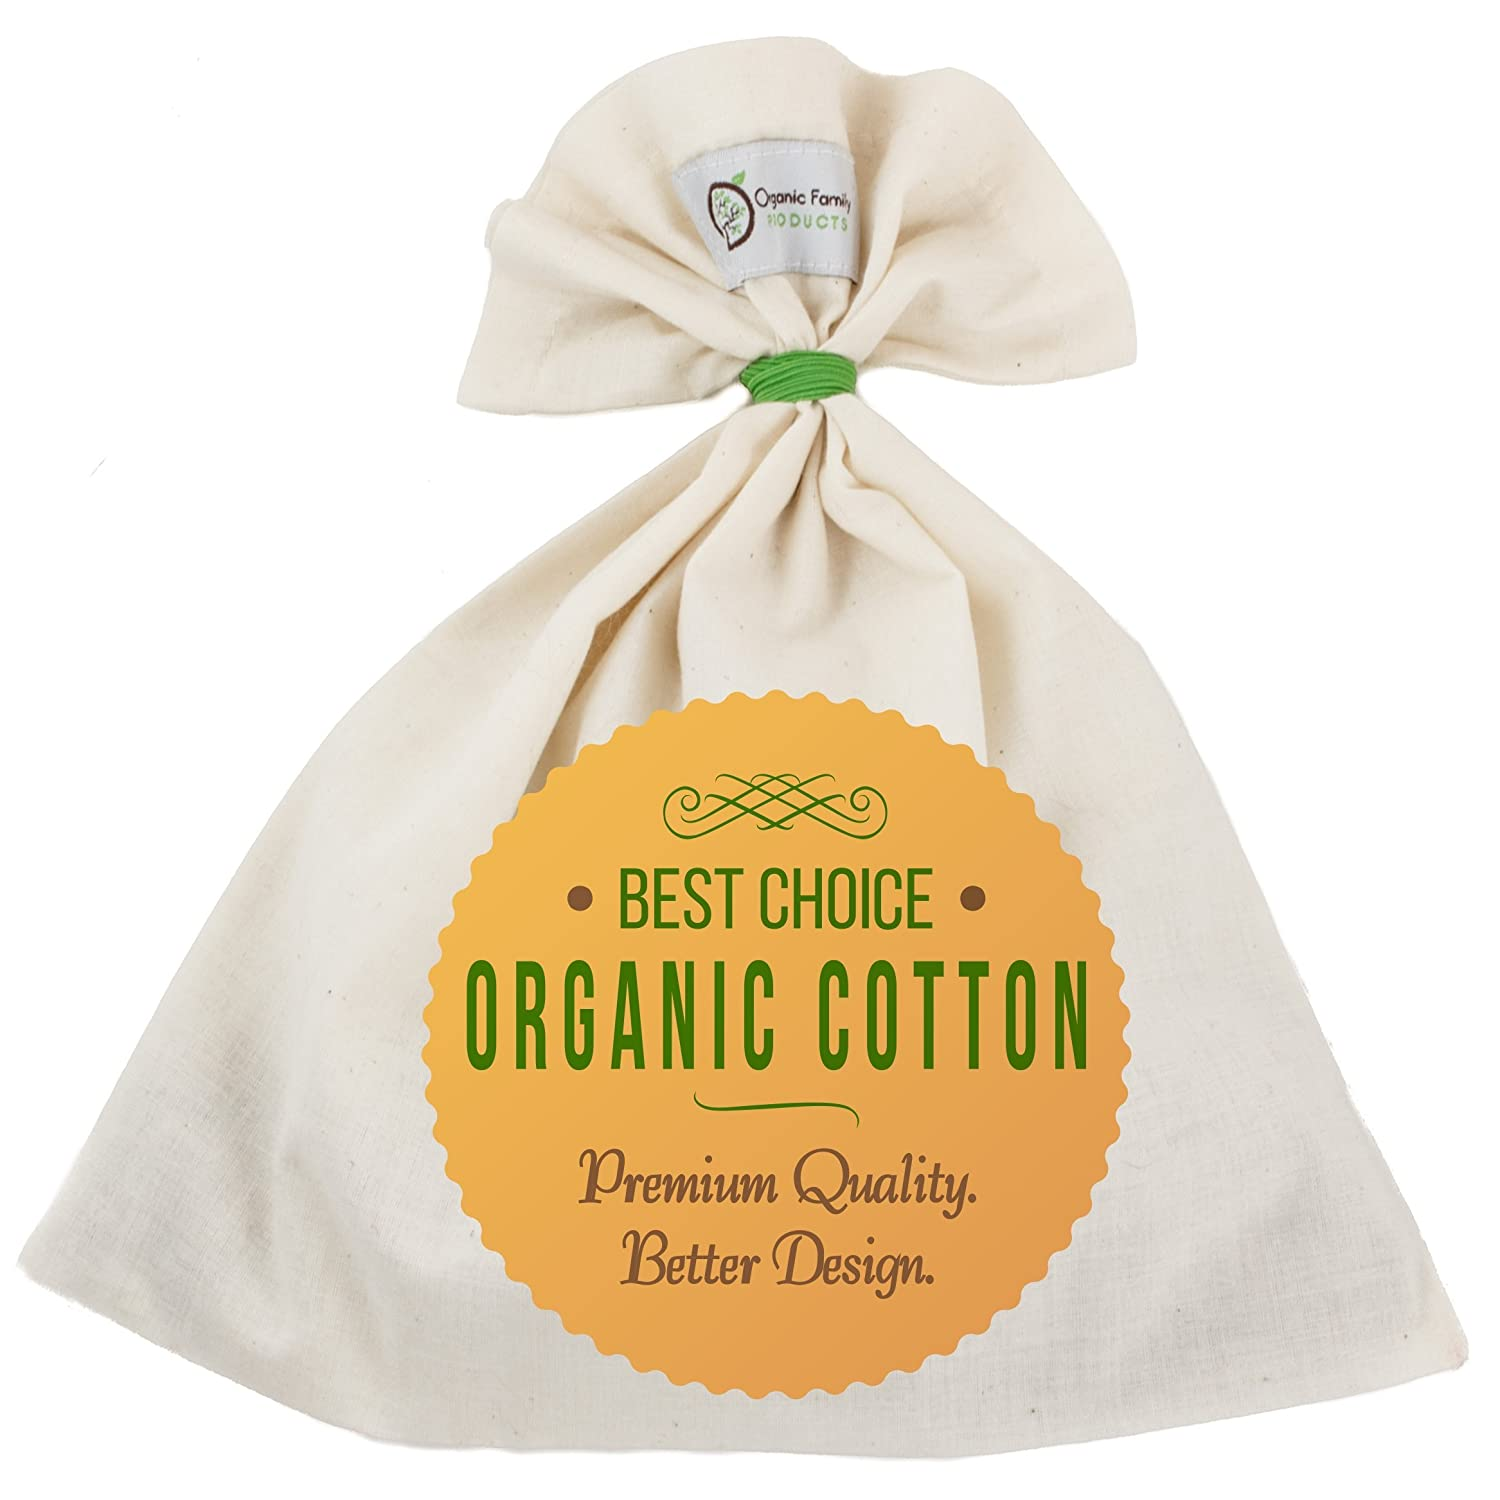 Organic Cotton Nut Milk Bag - Super Smooth Almond Milk Maker - No Seam Bottom, Drawstring Free - Professional Reusable Food Strainer for Yogurt, Cheese, Juice, Tea, Coffee - Natural & Eco-Friendly